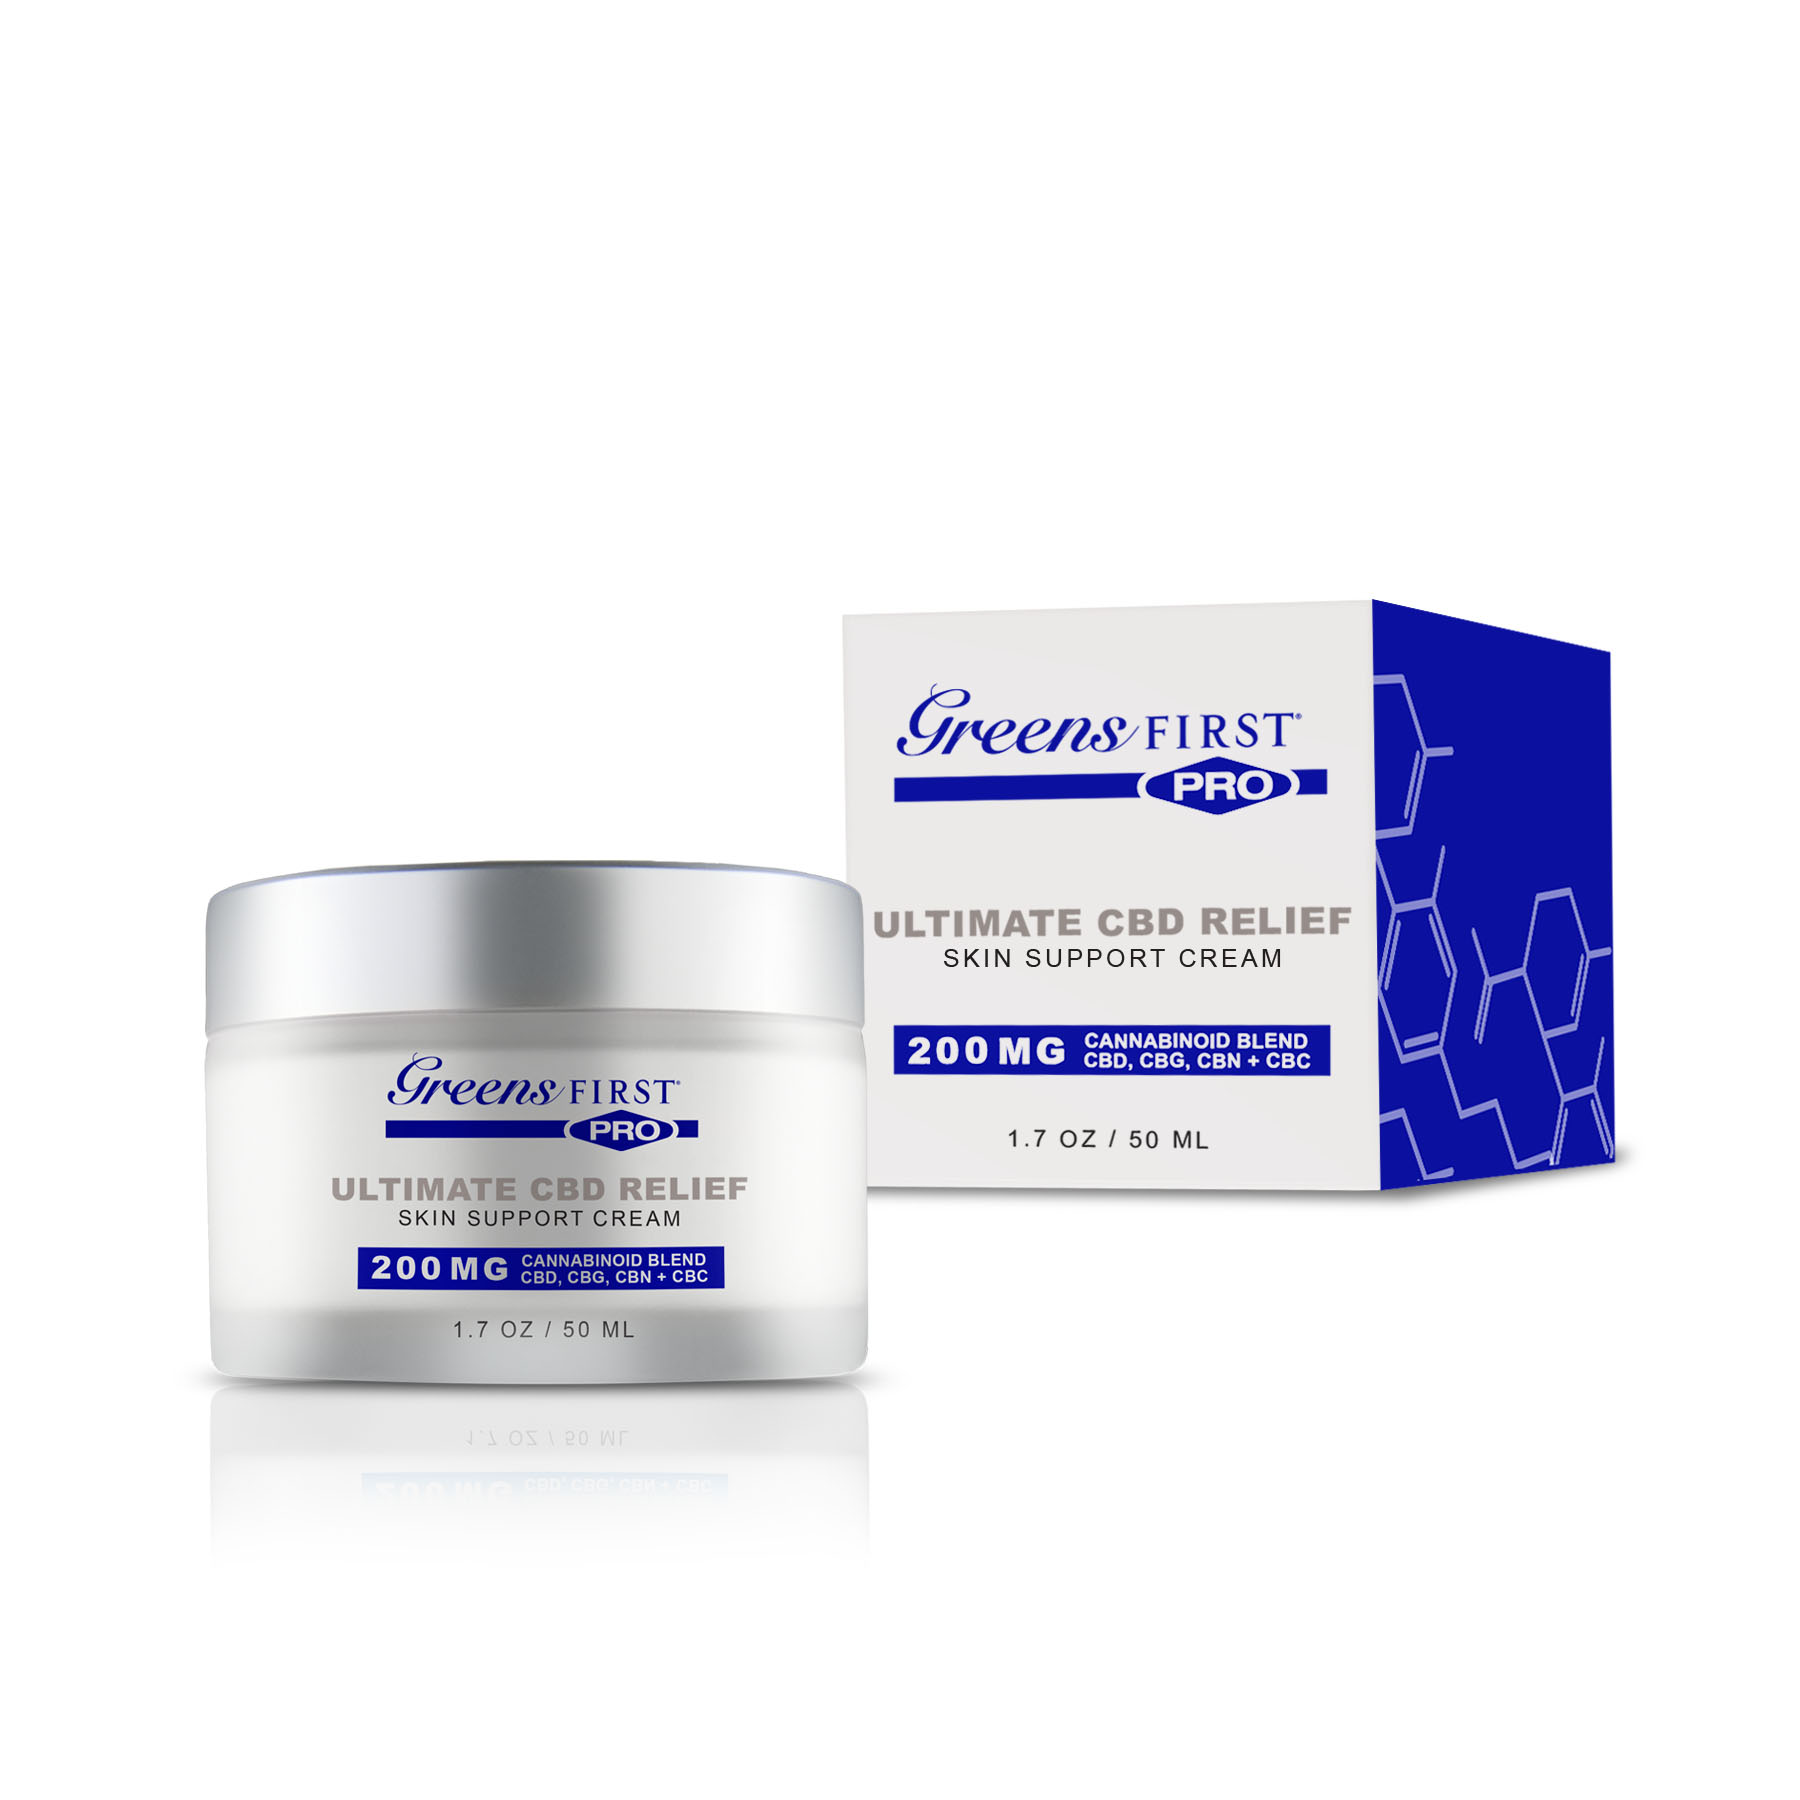 Greens First® Ultimate CBD Relief Skin Support Cream